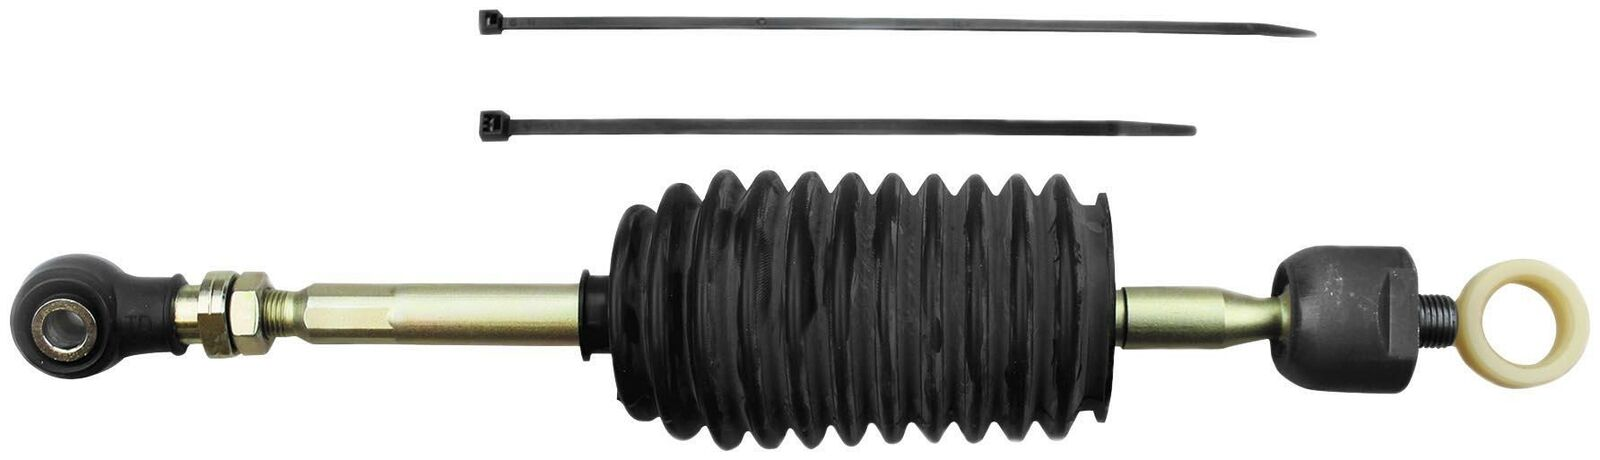 QUADBOSS STEERING RACK TIE ROD ASSEMBLY KITS LEFT INNER AND OUTER 51-1042-L